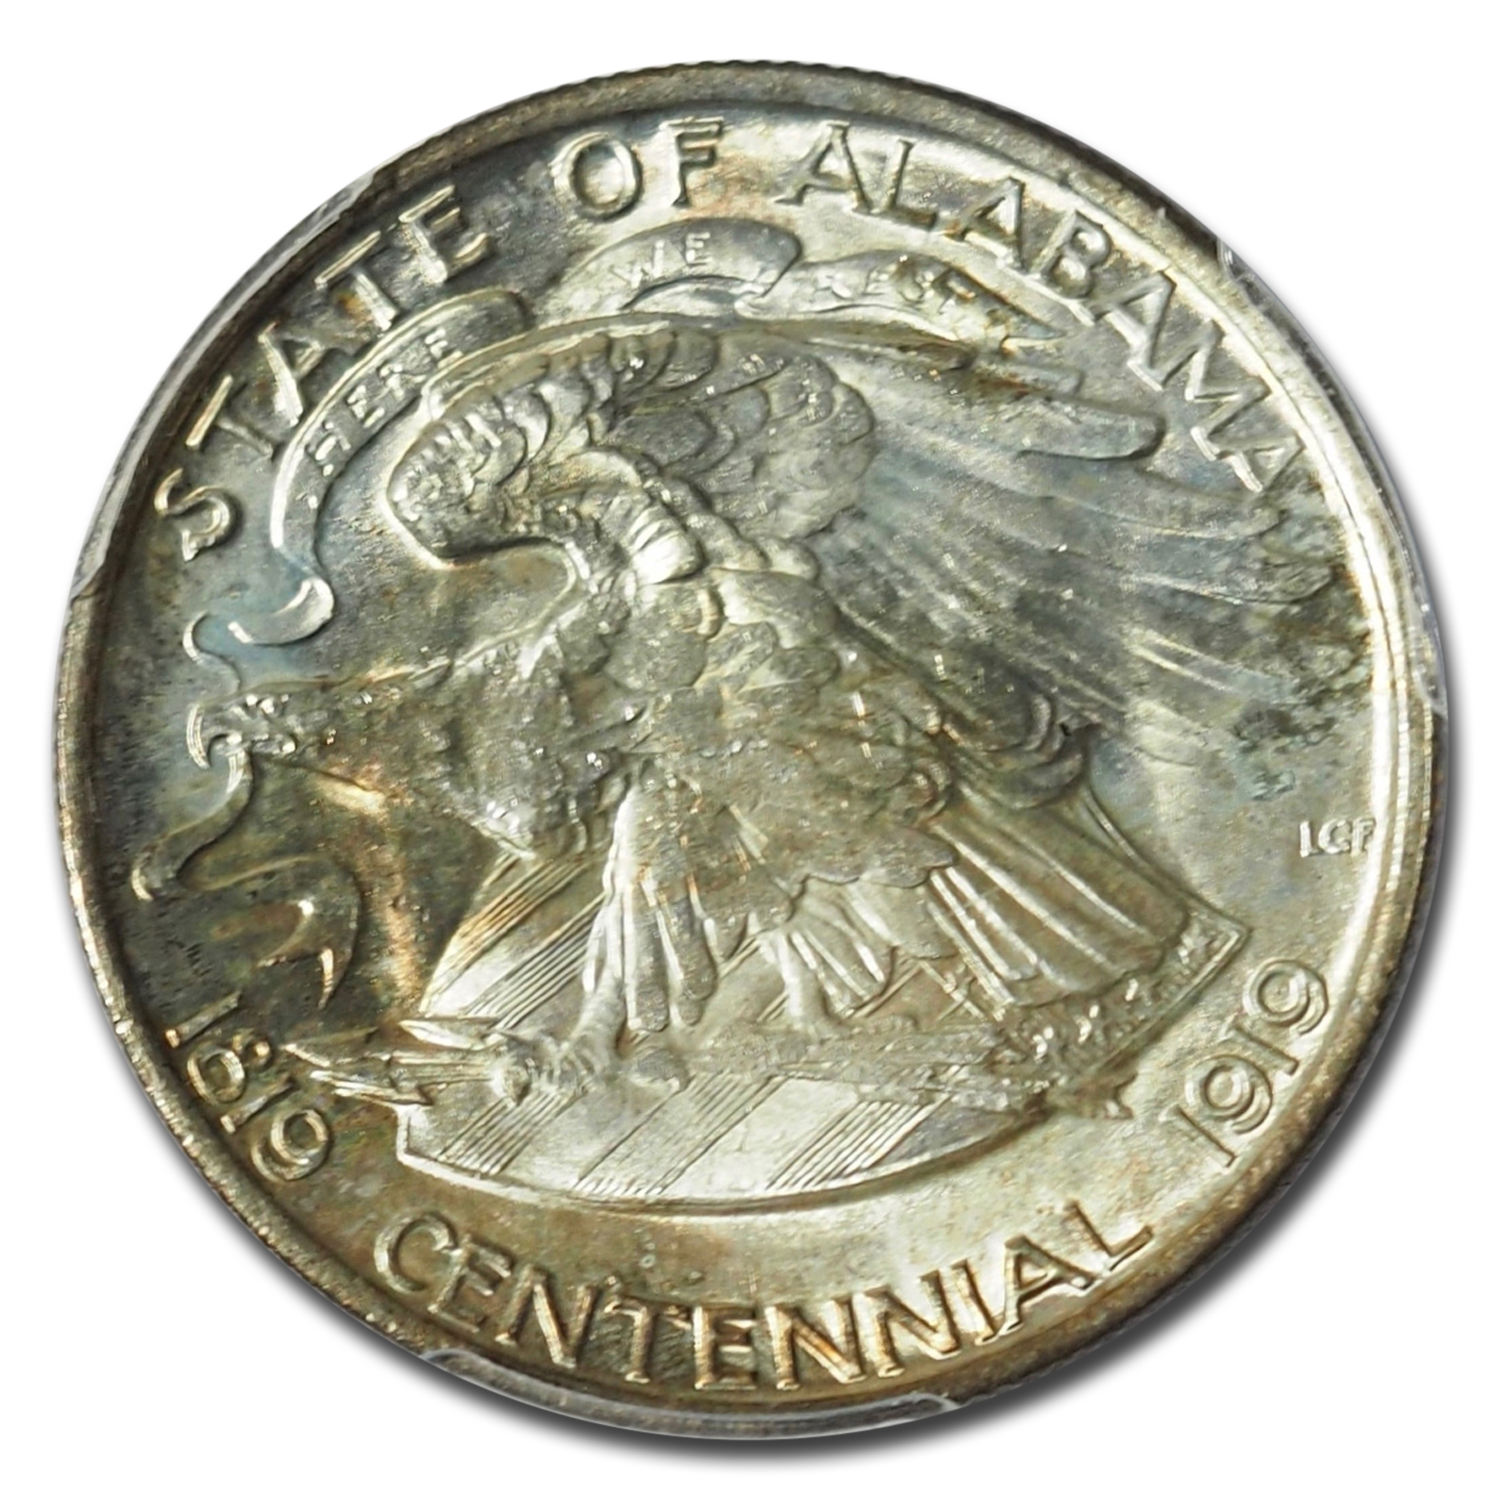 1921 Alabama Centennial Commemorative Half MS-65 PCGS